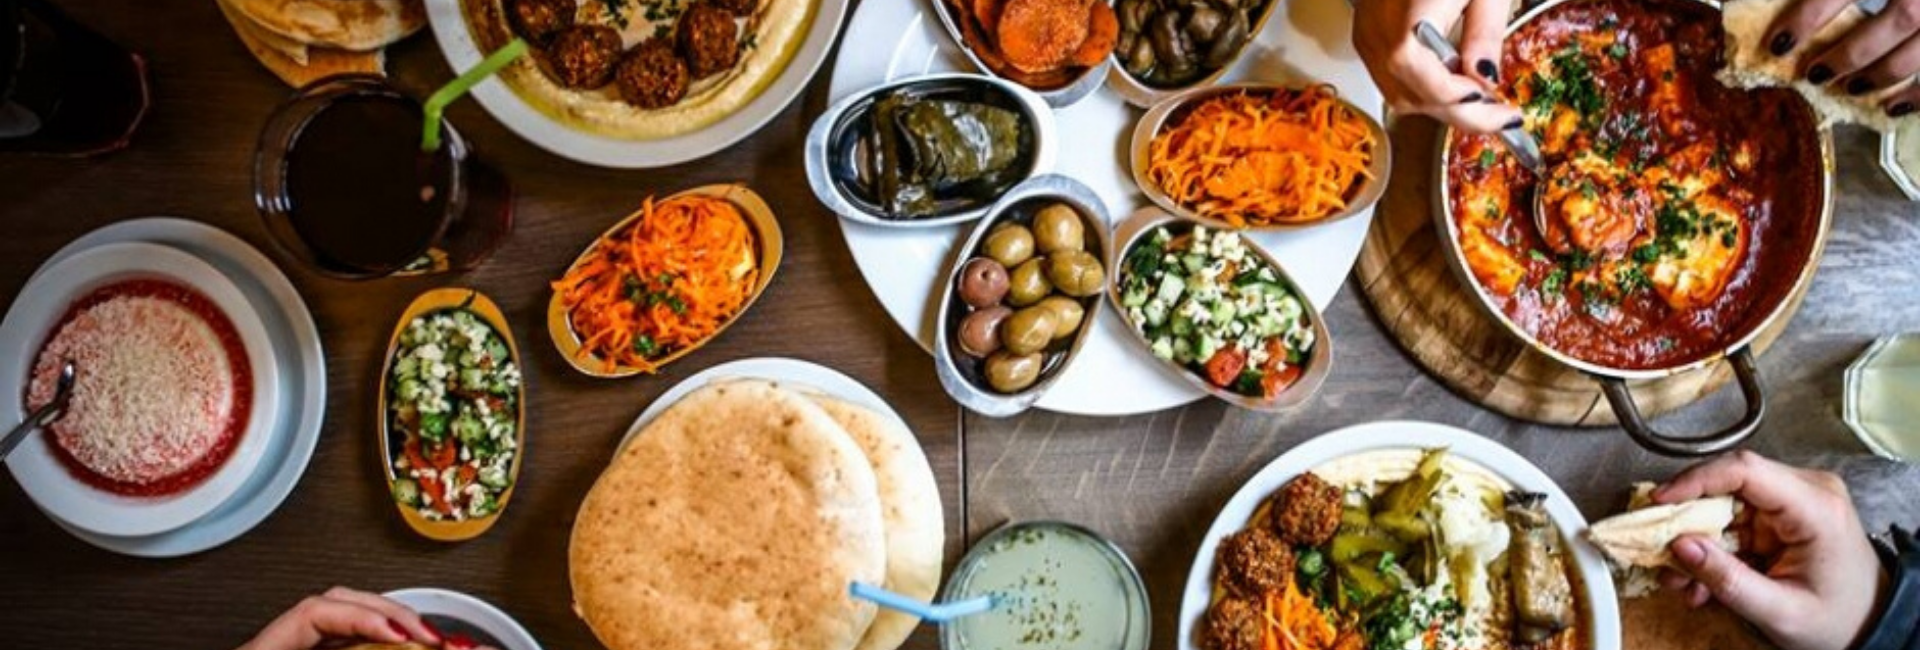 The Best Vegetarian and Vegan Food in Budapest